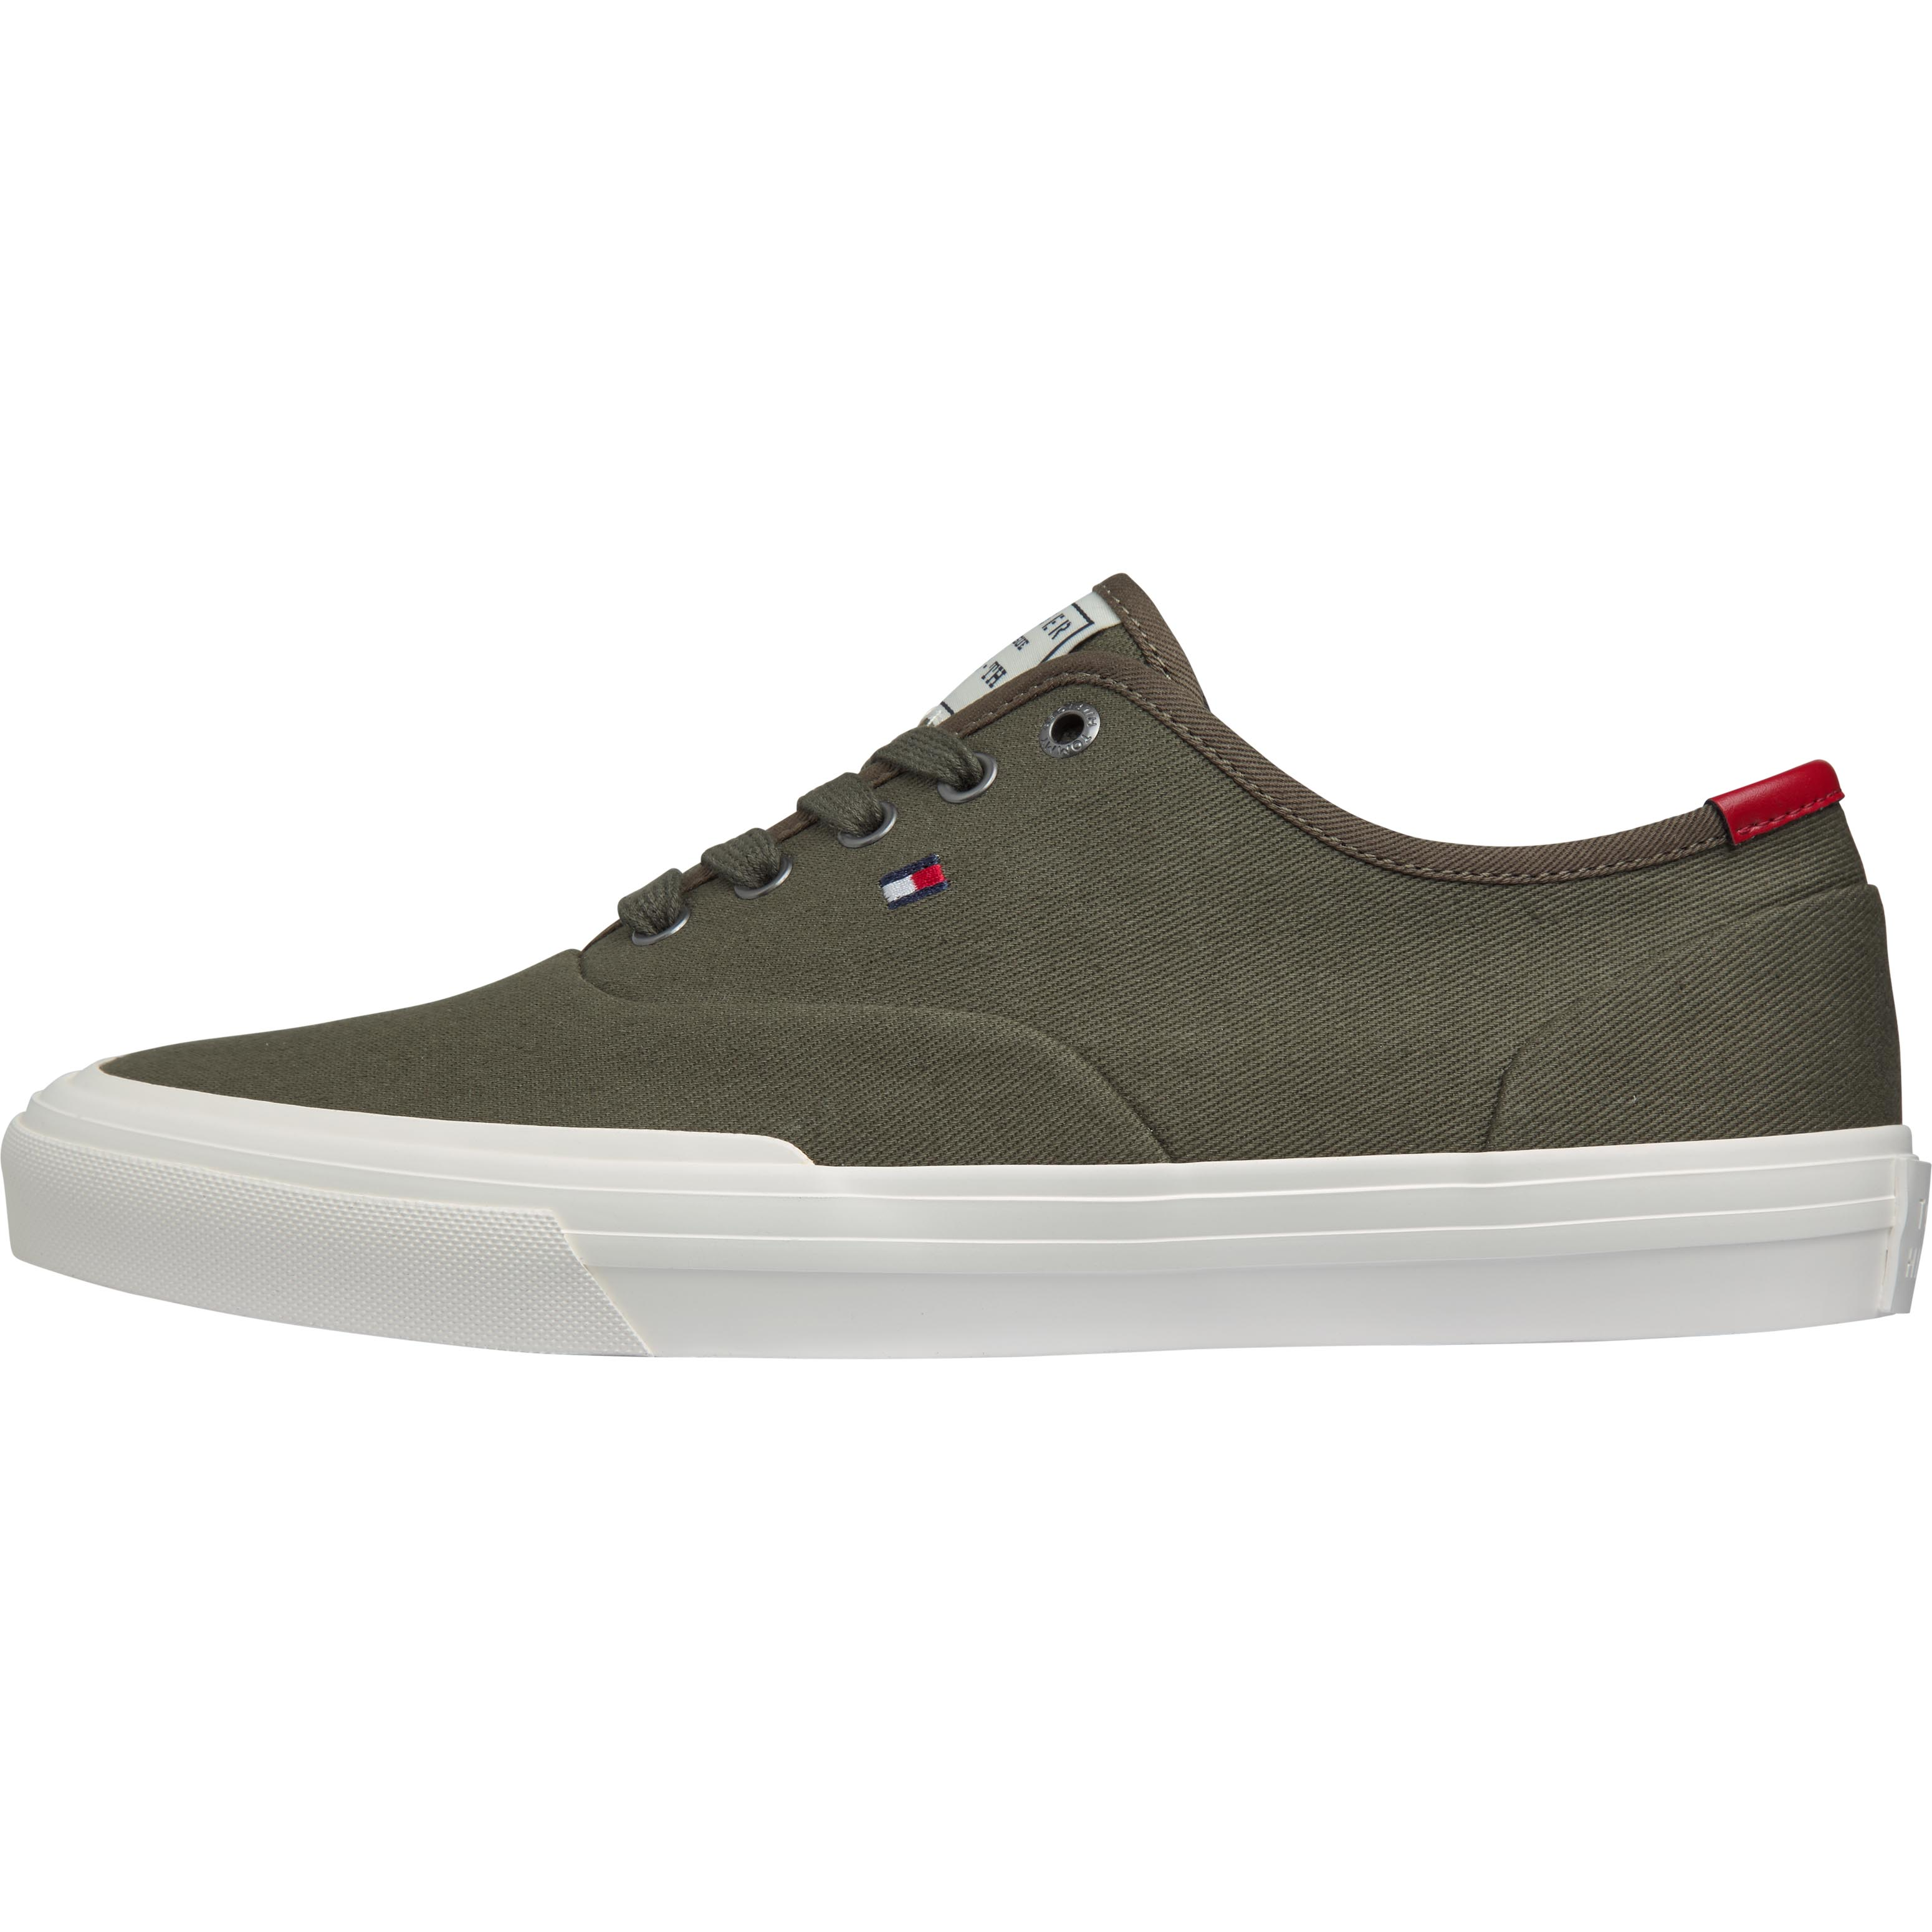 Tommy Hilfiger Core Oxford Twill sneakers, army green, 45